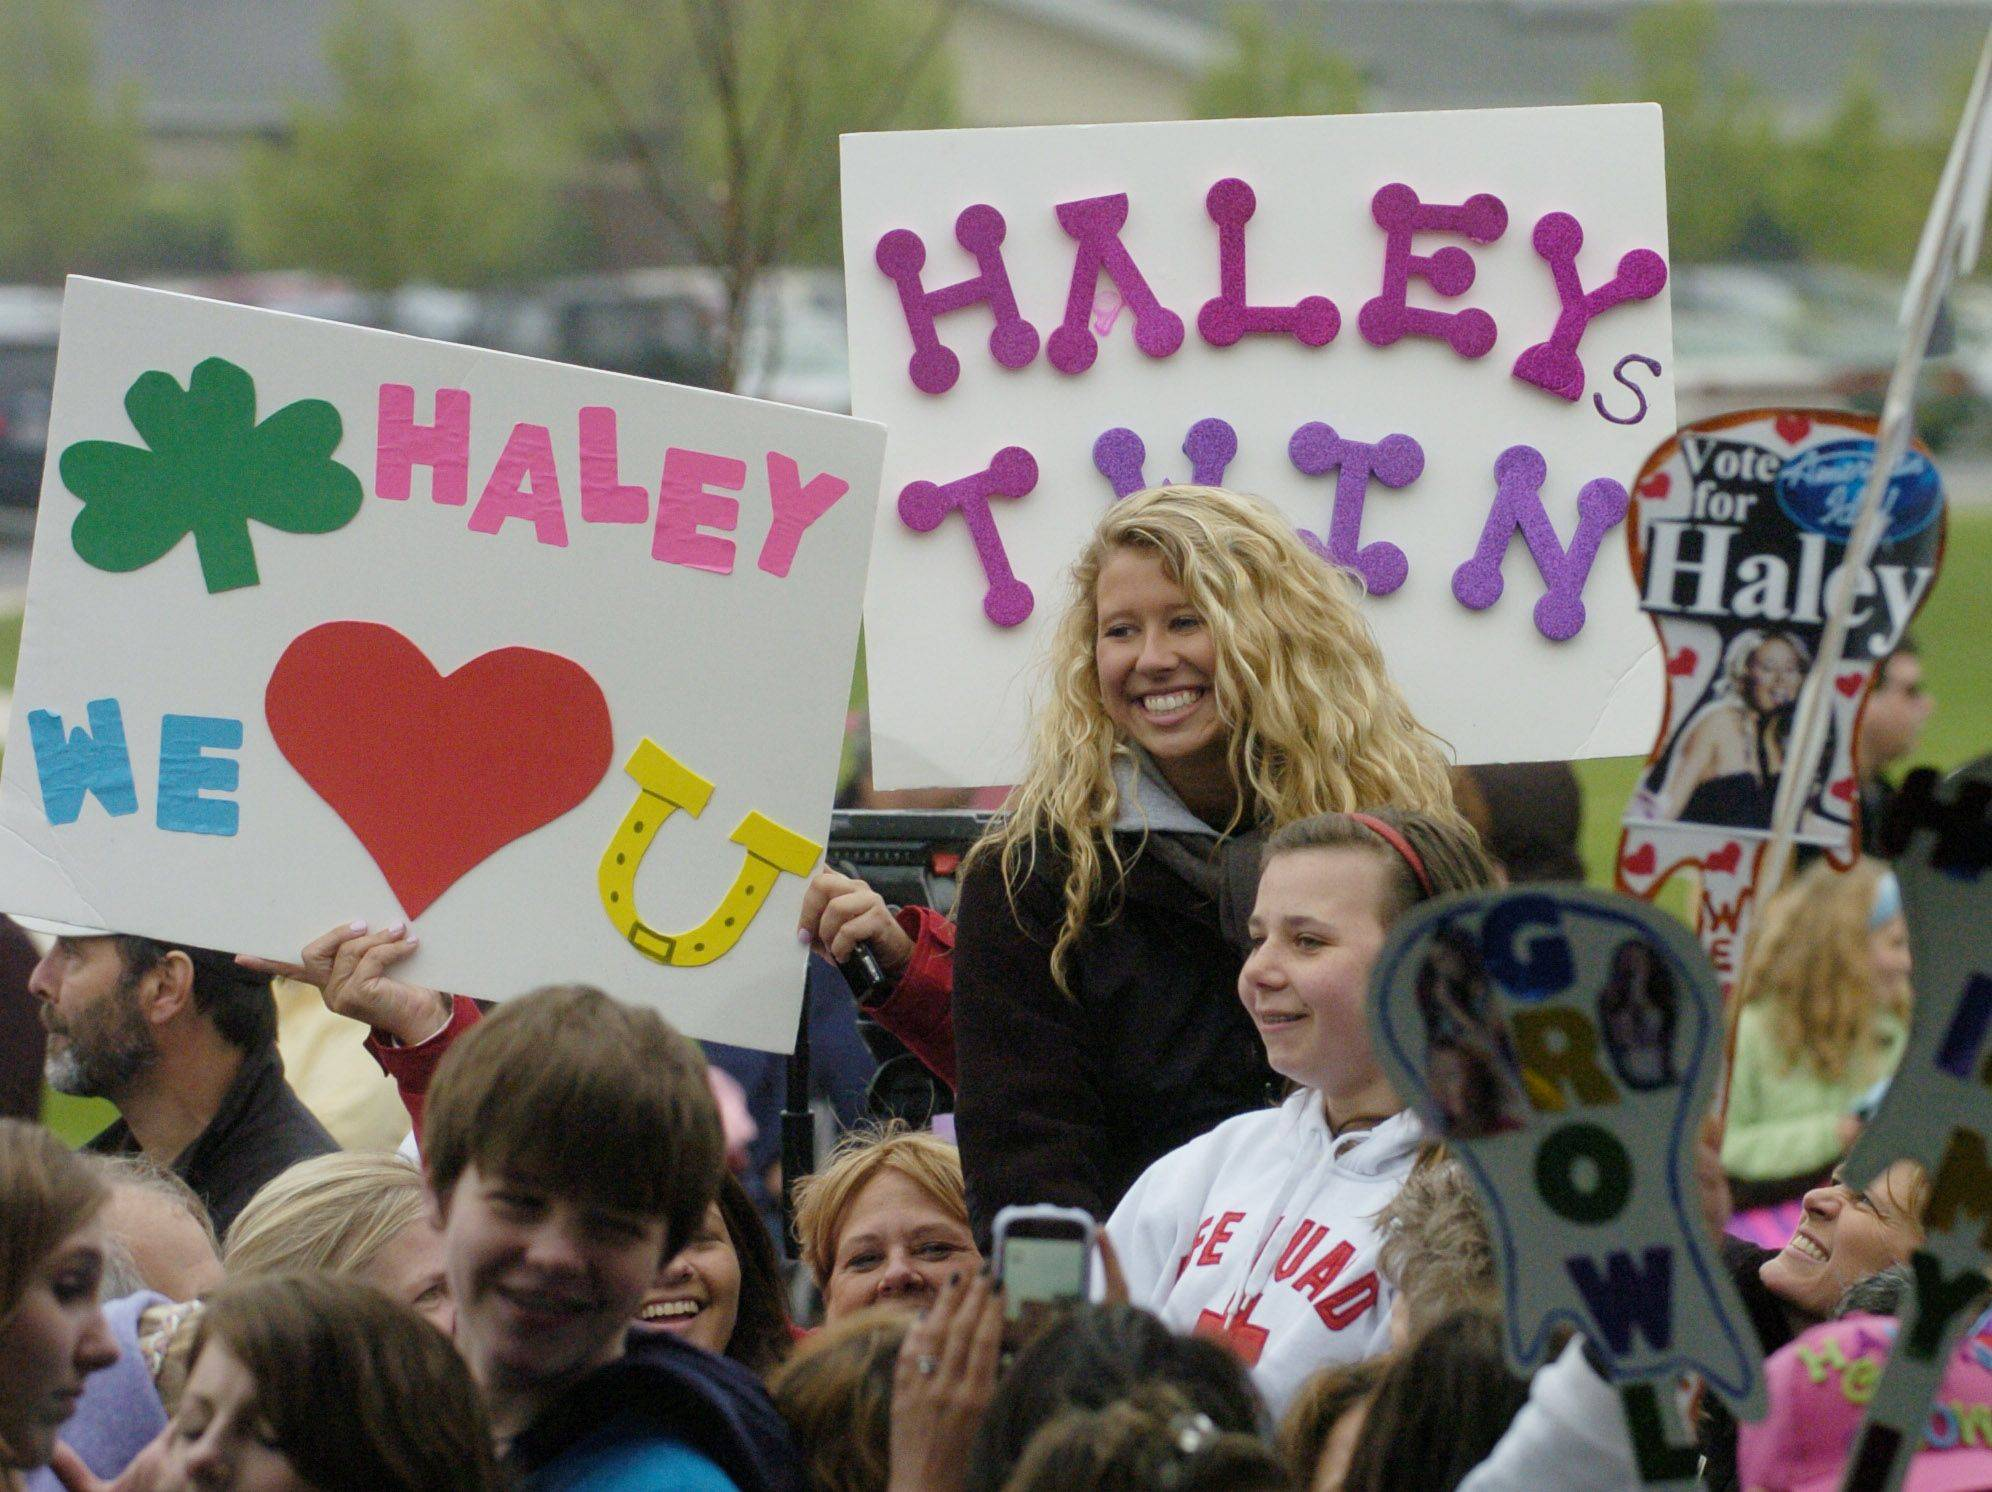 Fans await the arrival of American Idol finalist Haley Reinhart as she is welcomed home to Wheeling Saturday.